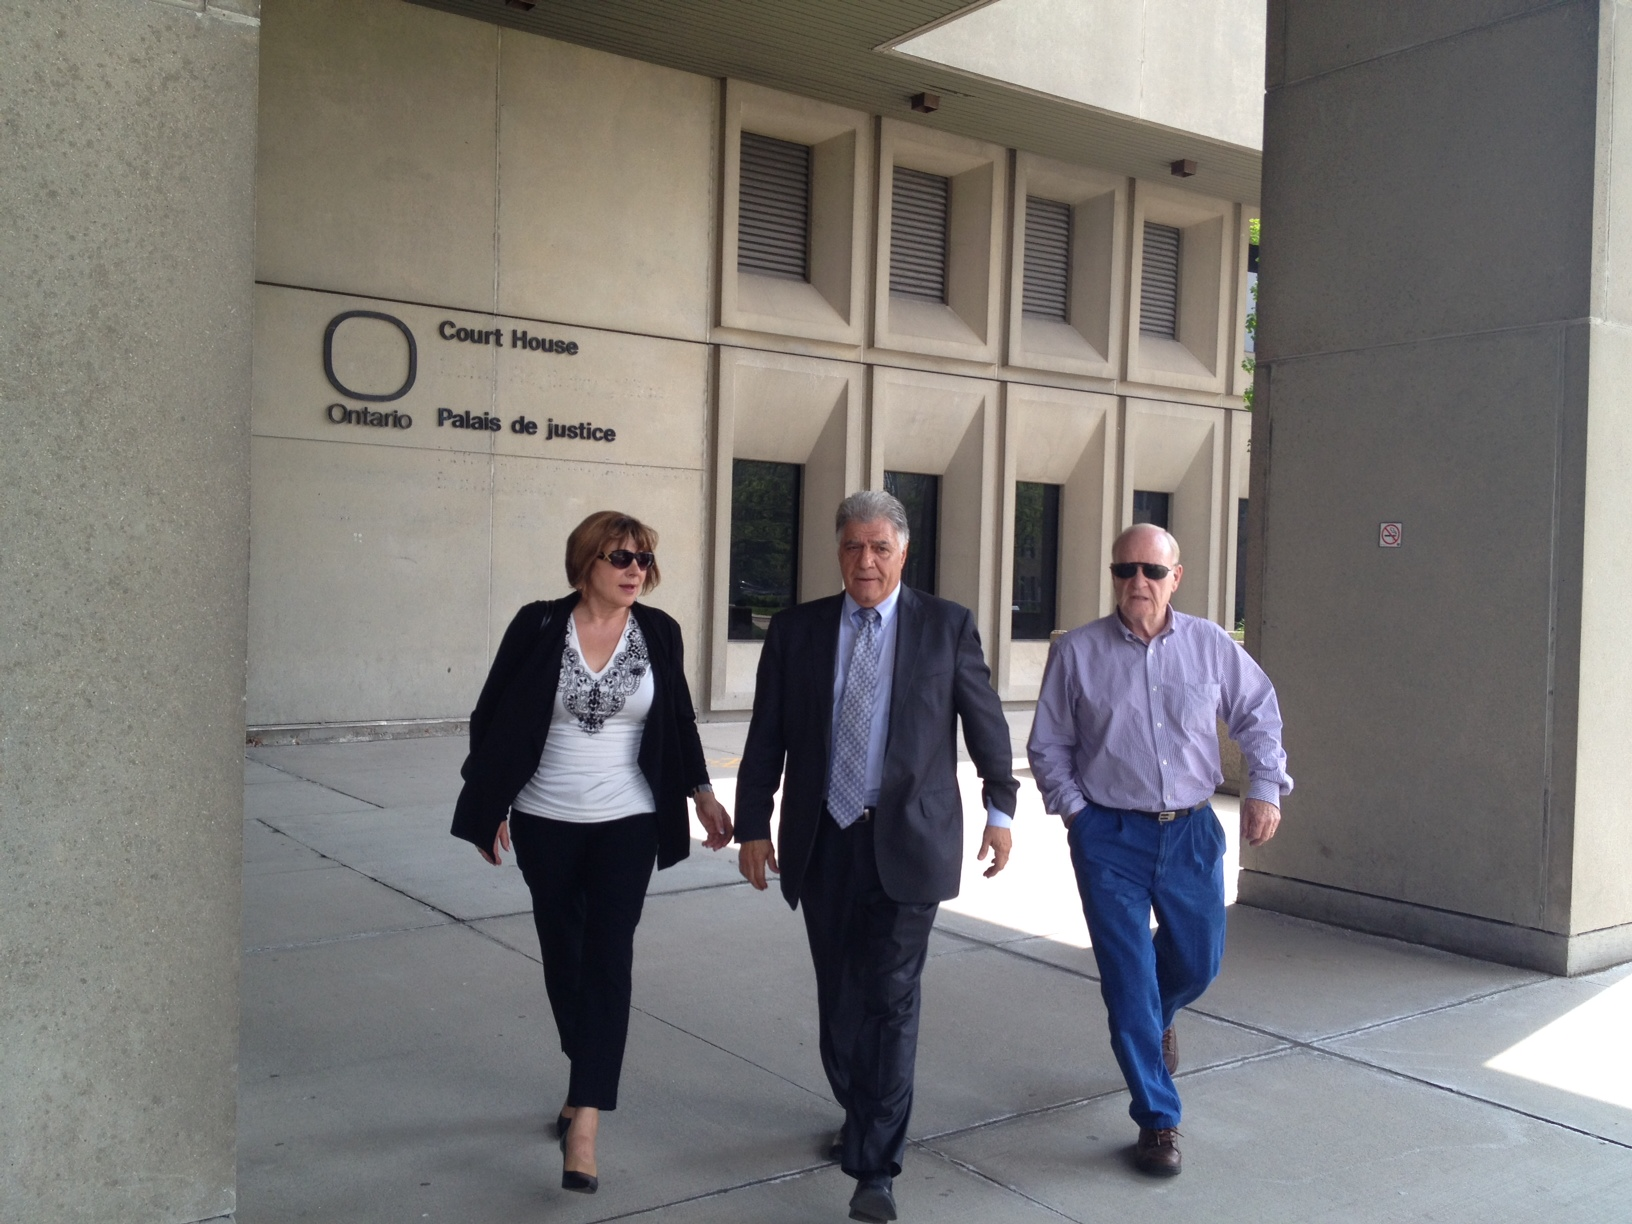 Joe Fontana, his wife Vicky and another man leave the courthouse after the second day of the mayor's trial.